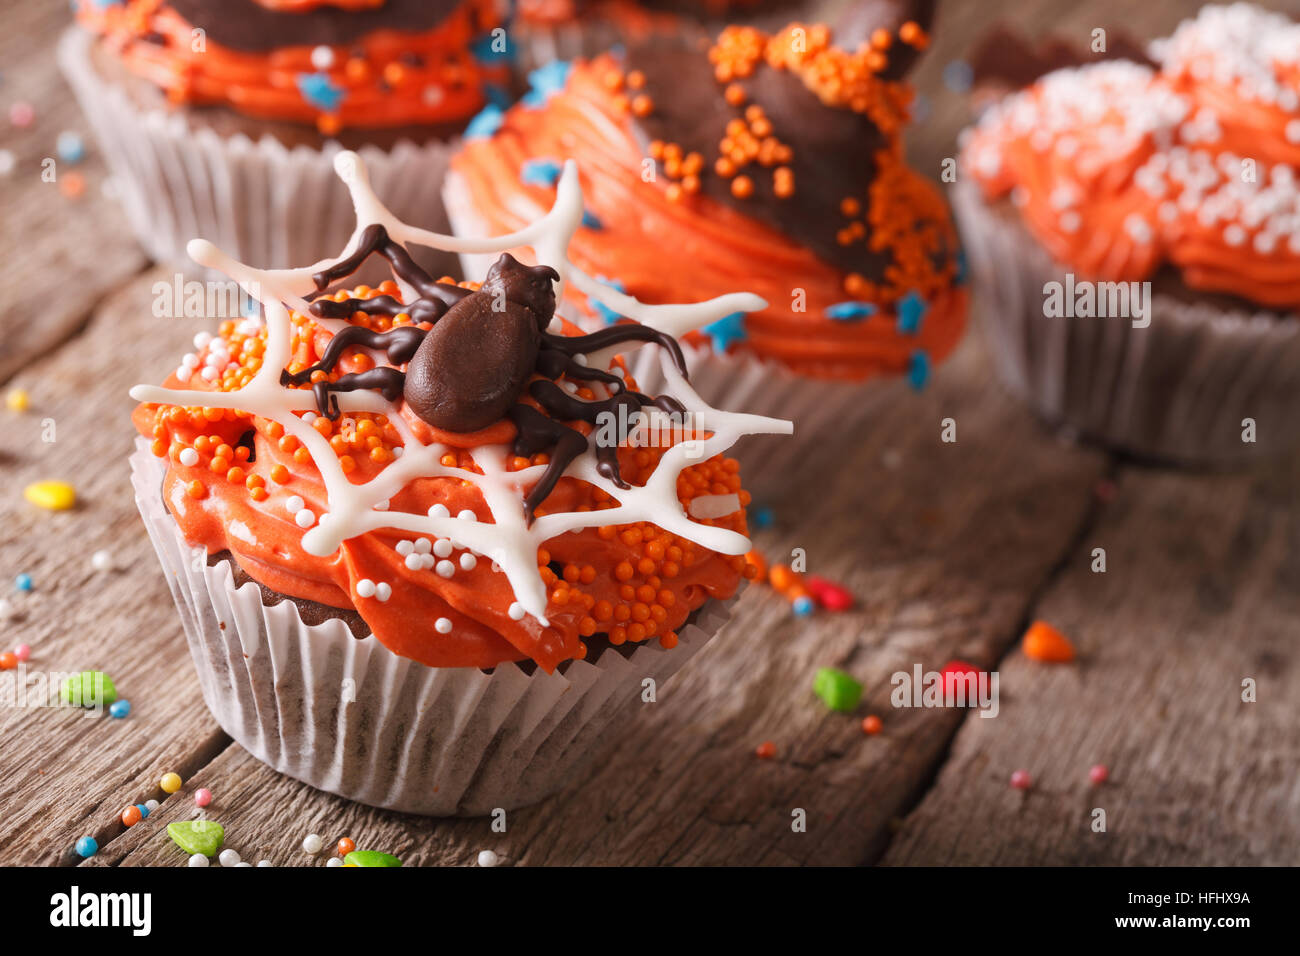 Halloween cupcakes decorated with chocolate spider on the table close-up. horizontal - Stock Image